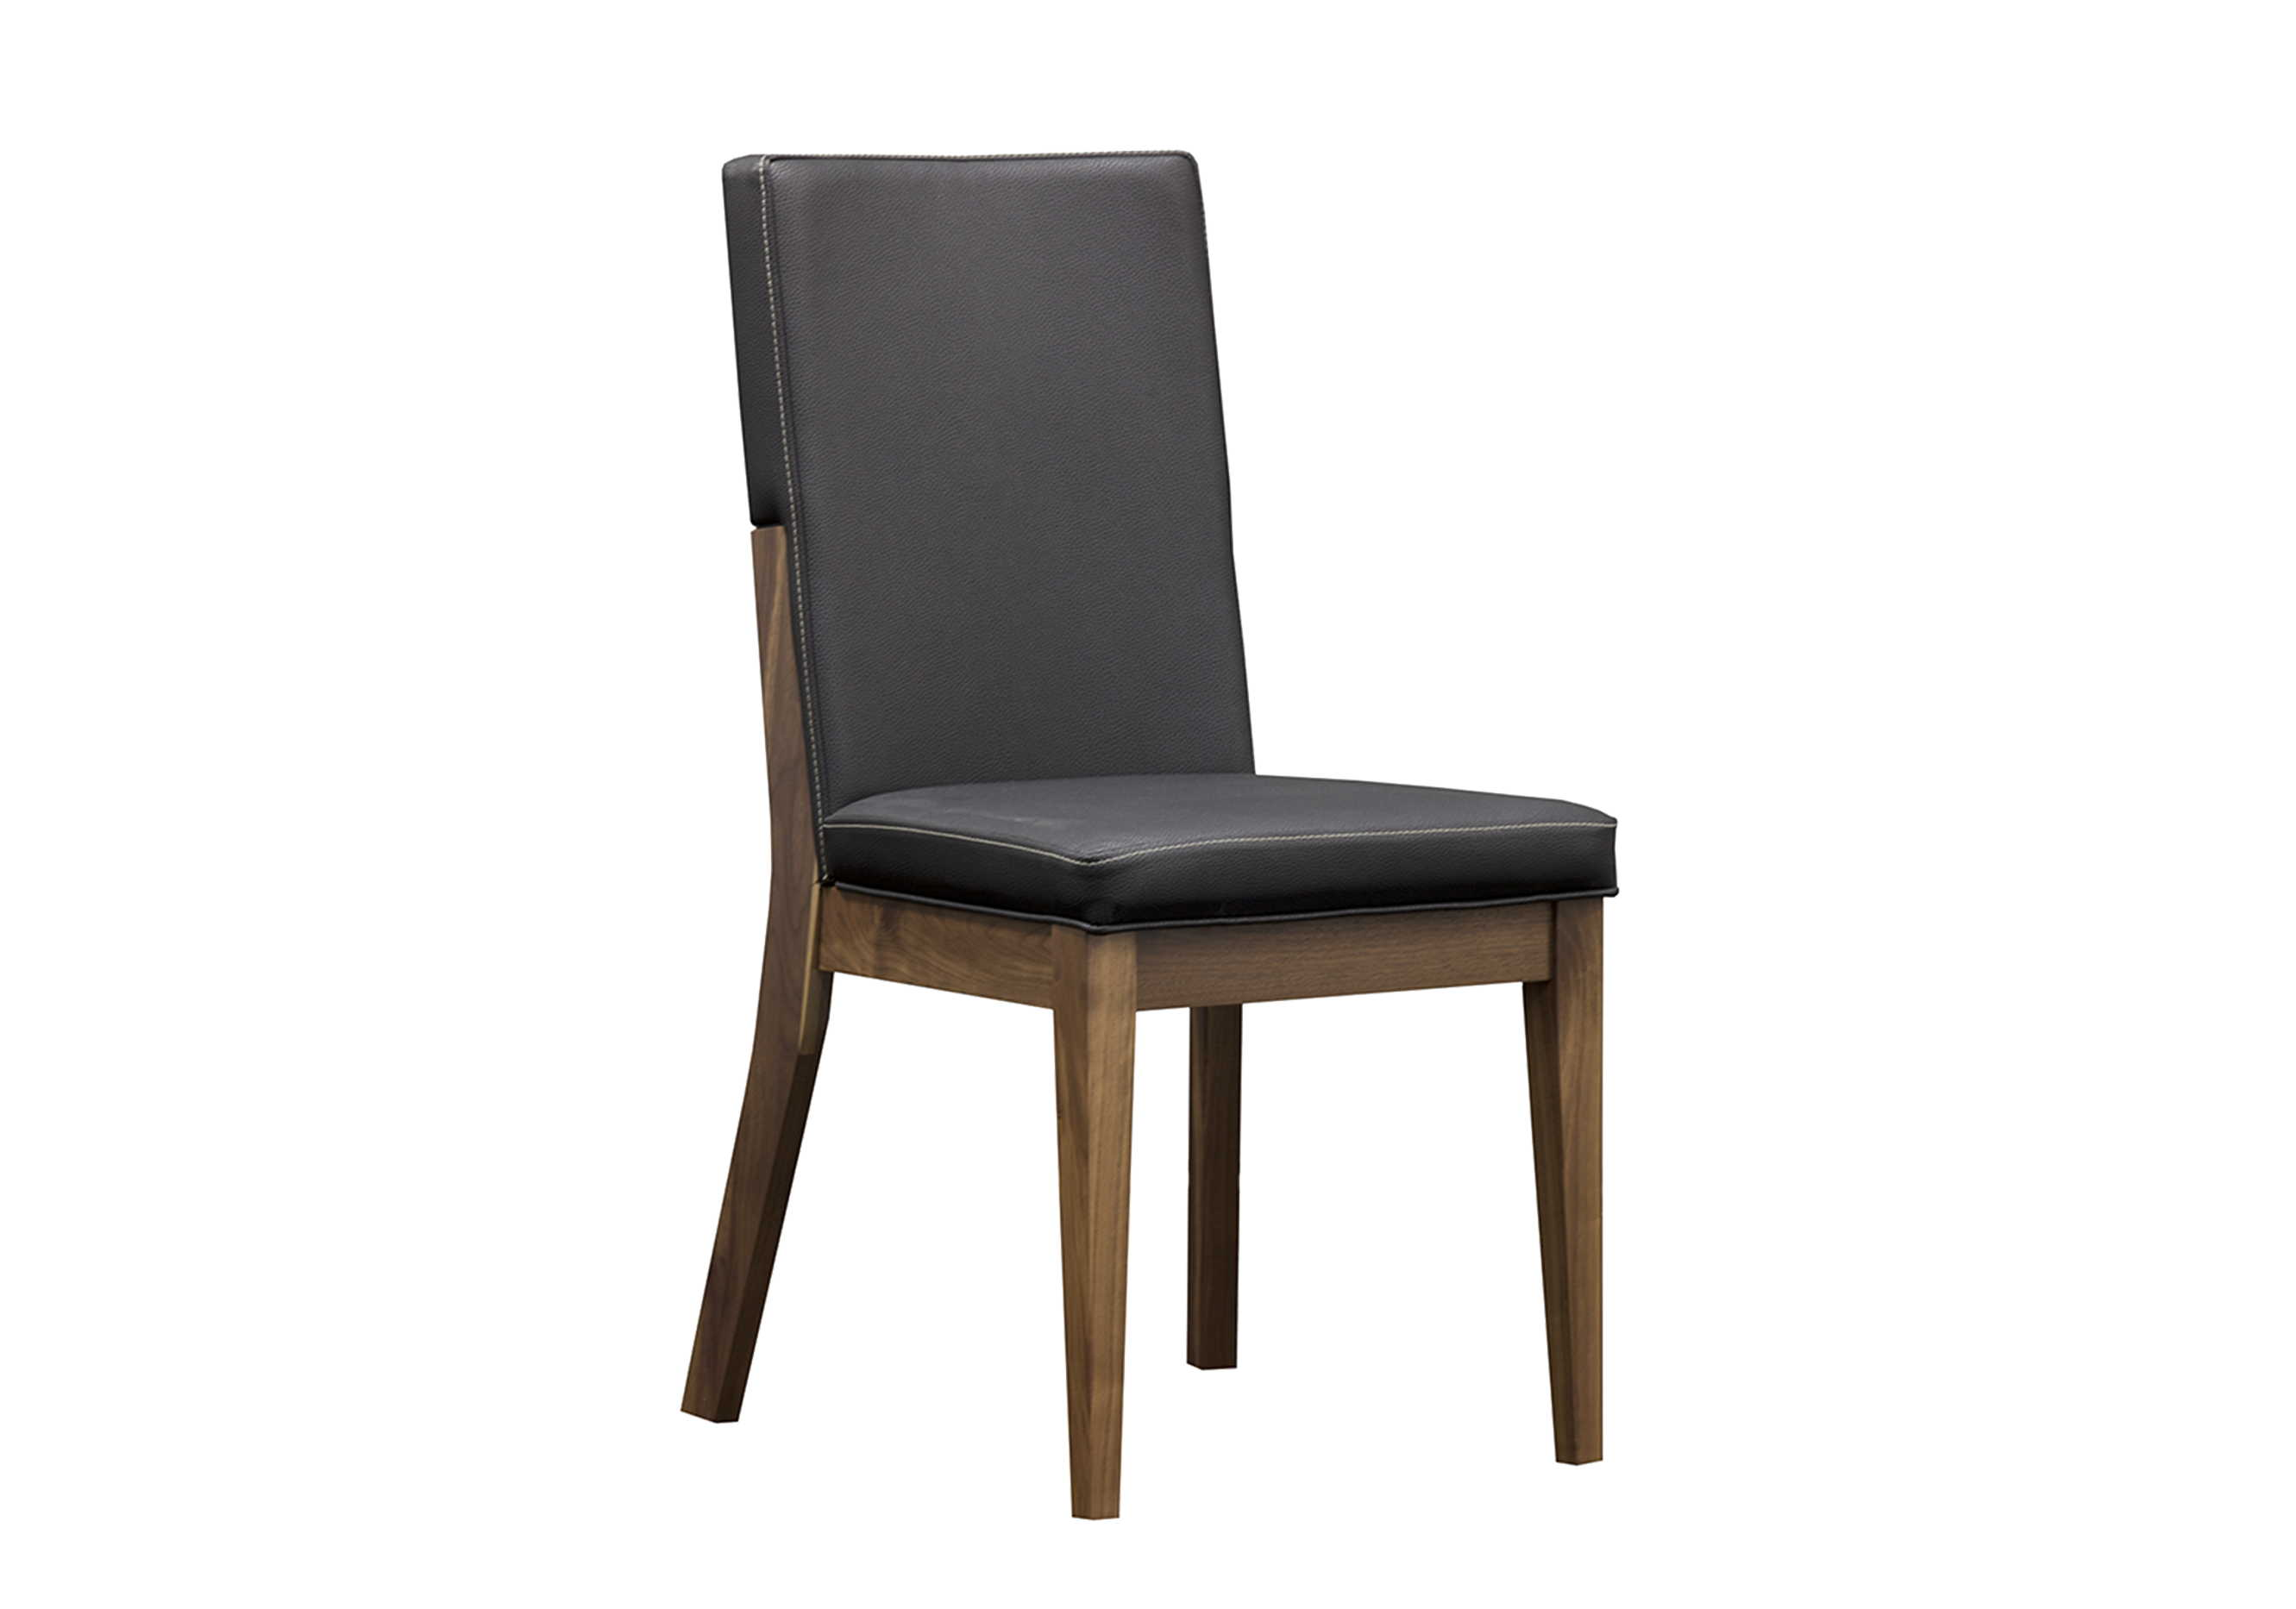 Chairs C-296-D